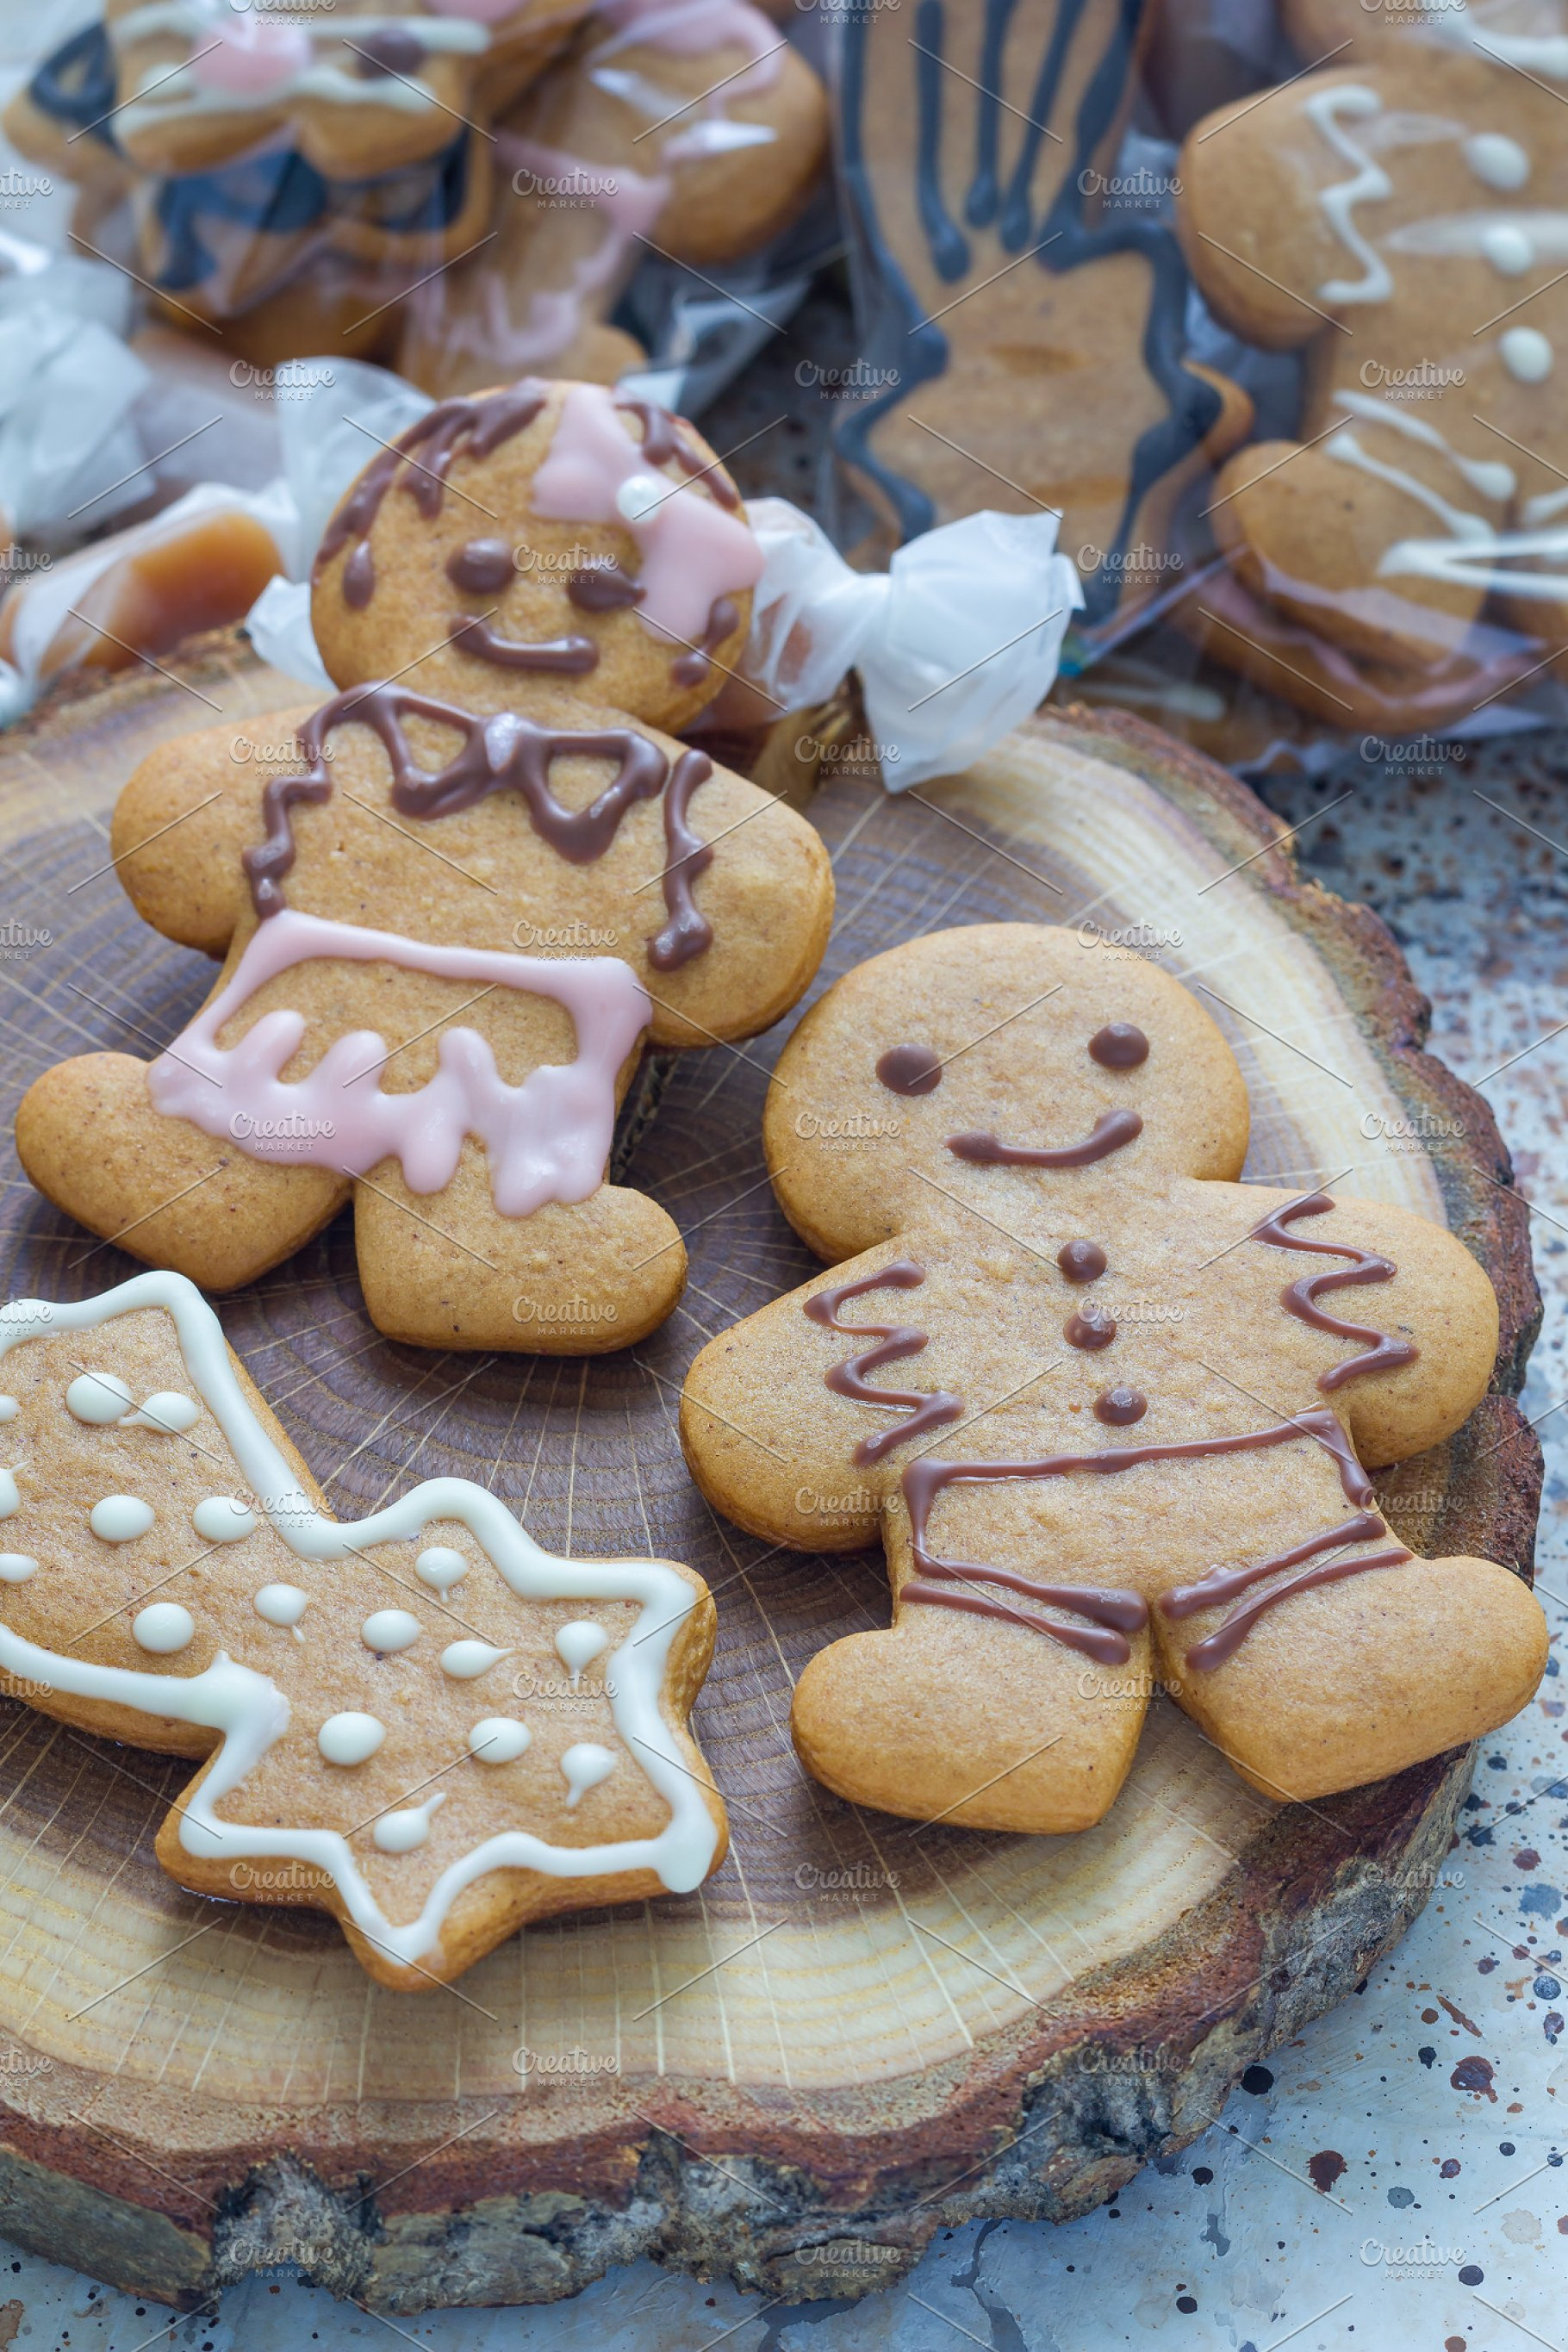 Sweet Gifts For Holiydays Homemade Christmas Gingerbread Cookies And Caramel Candies On A Wooden Board Vertical